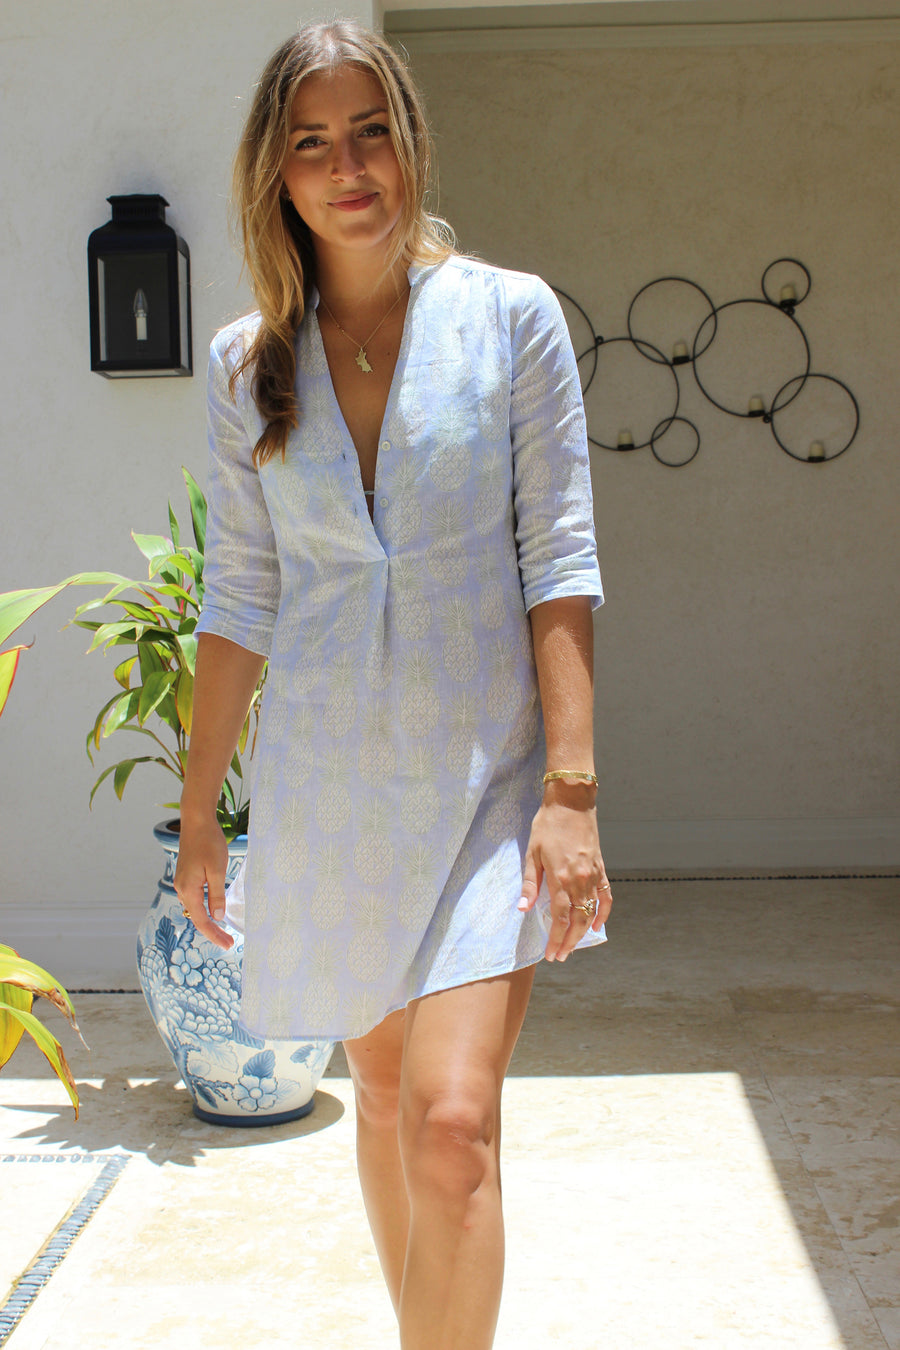 Linen Decima Dress by Lotty B in Pineapple olive print, Mustique holiday style